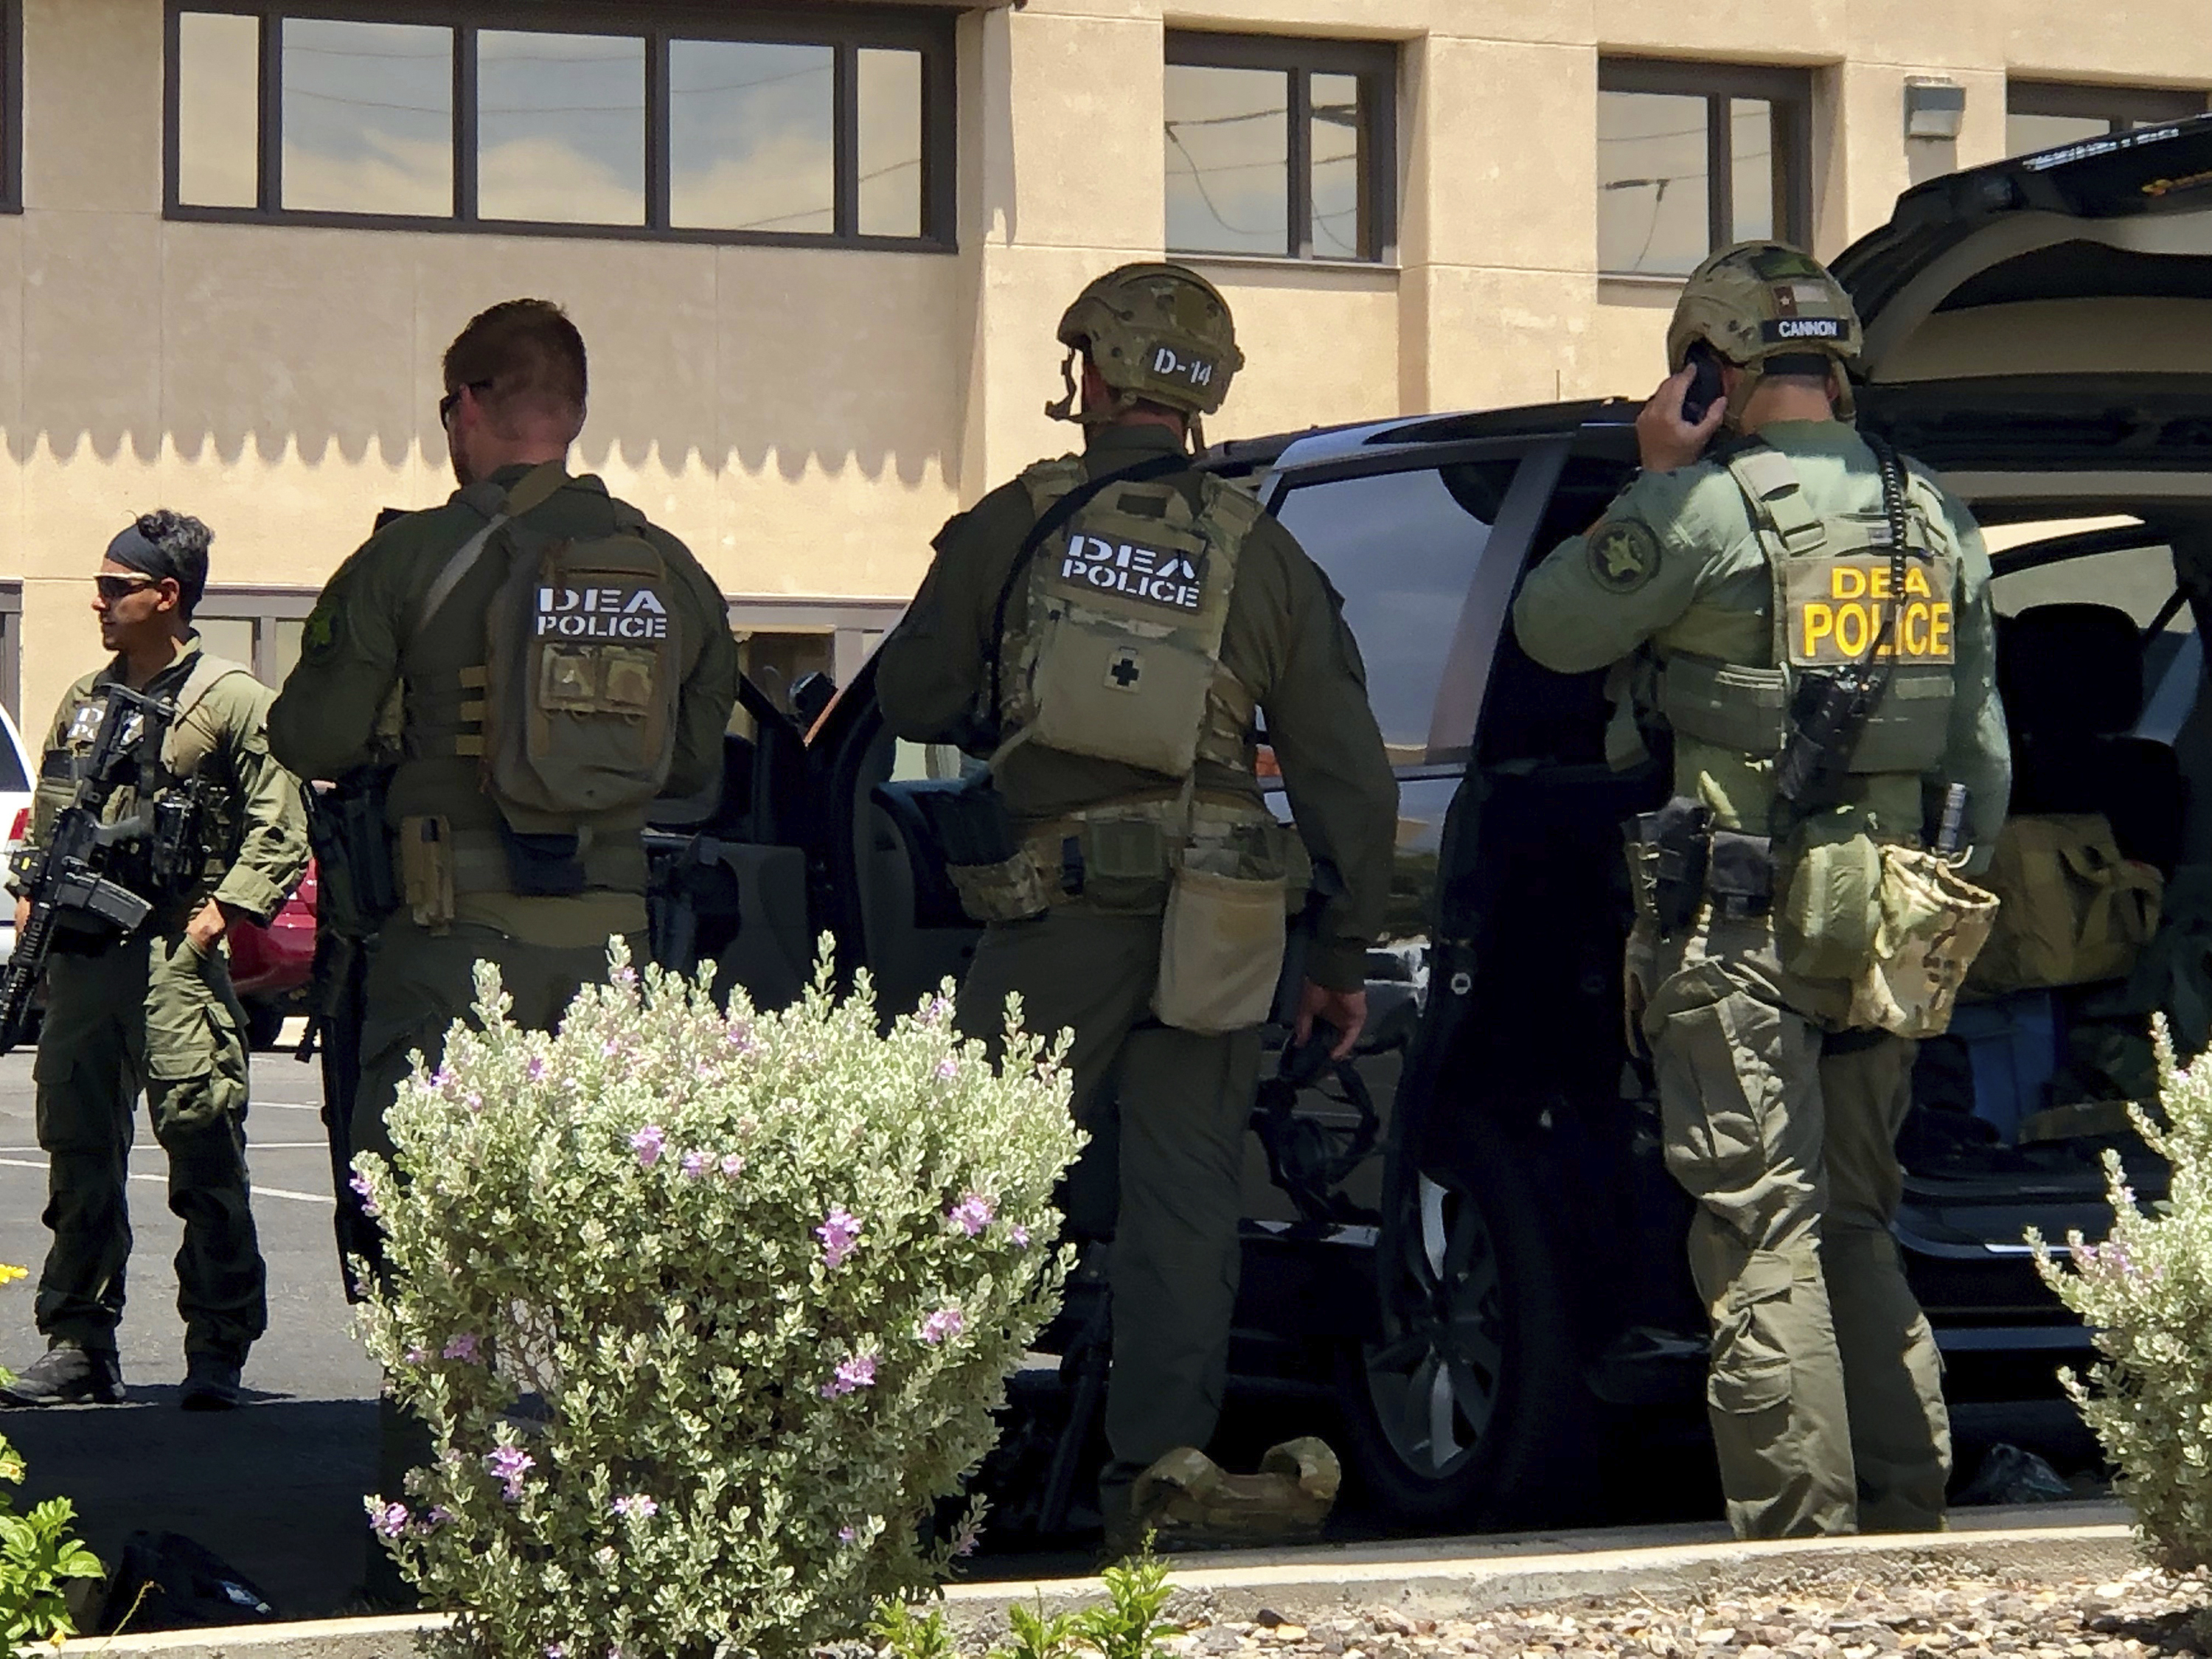 Law enforcement from different agencies work the scene of a shooting  at a shopping mall in El Paso, Texas, on Saturday, Aug. 3, 2019.   Multiple people were killed and one person was in custody after a shooter went on a rampage at a shopping mall, police in the Texas border town of El Paso said. (AP Photo/Rudy Gutierrez)